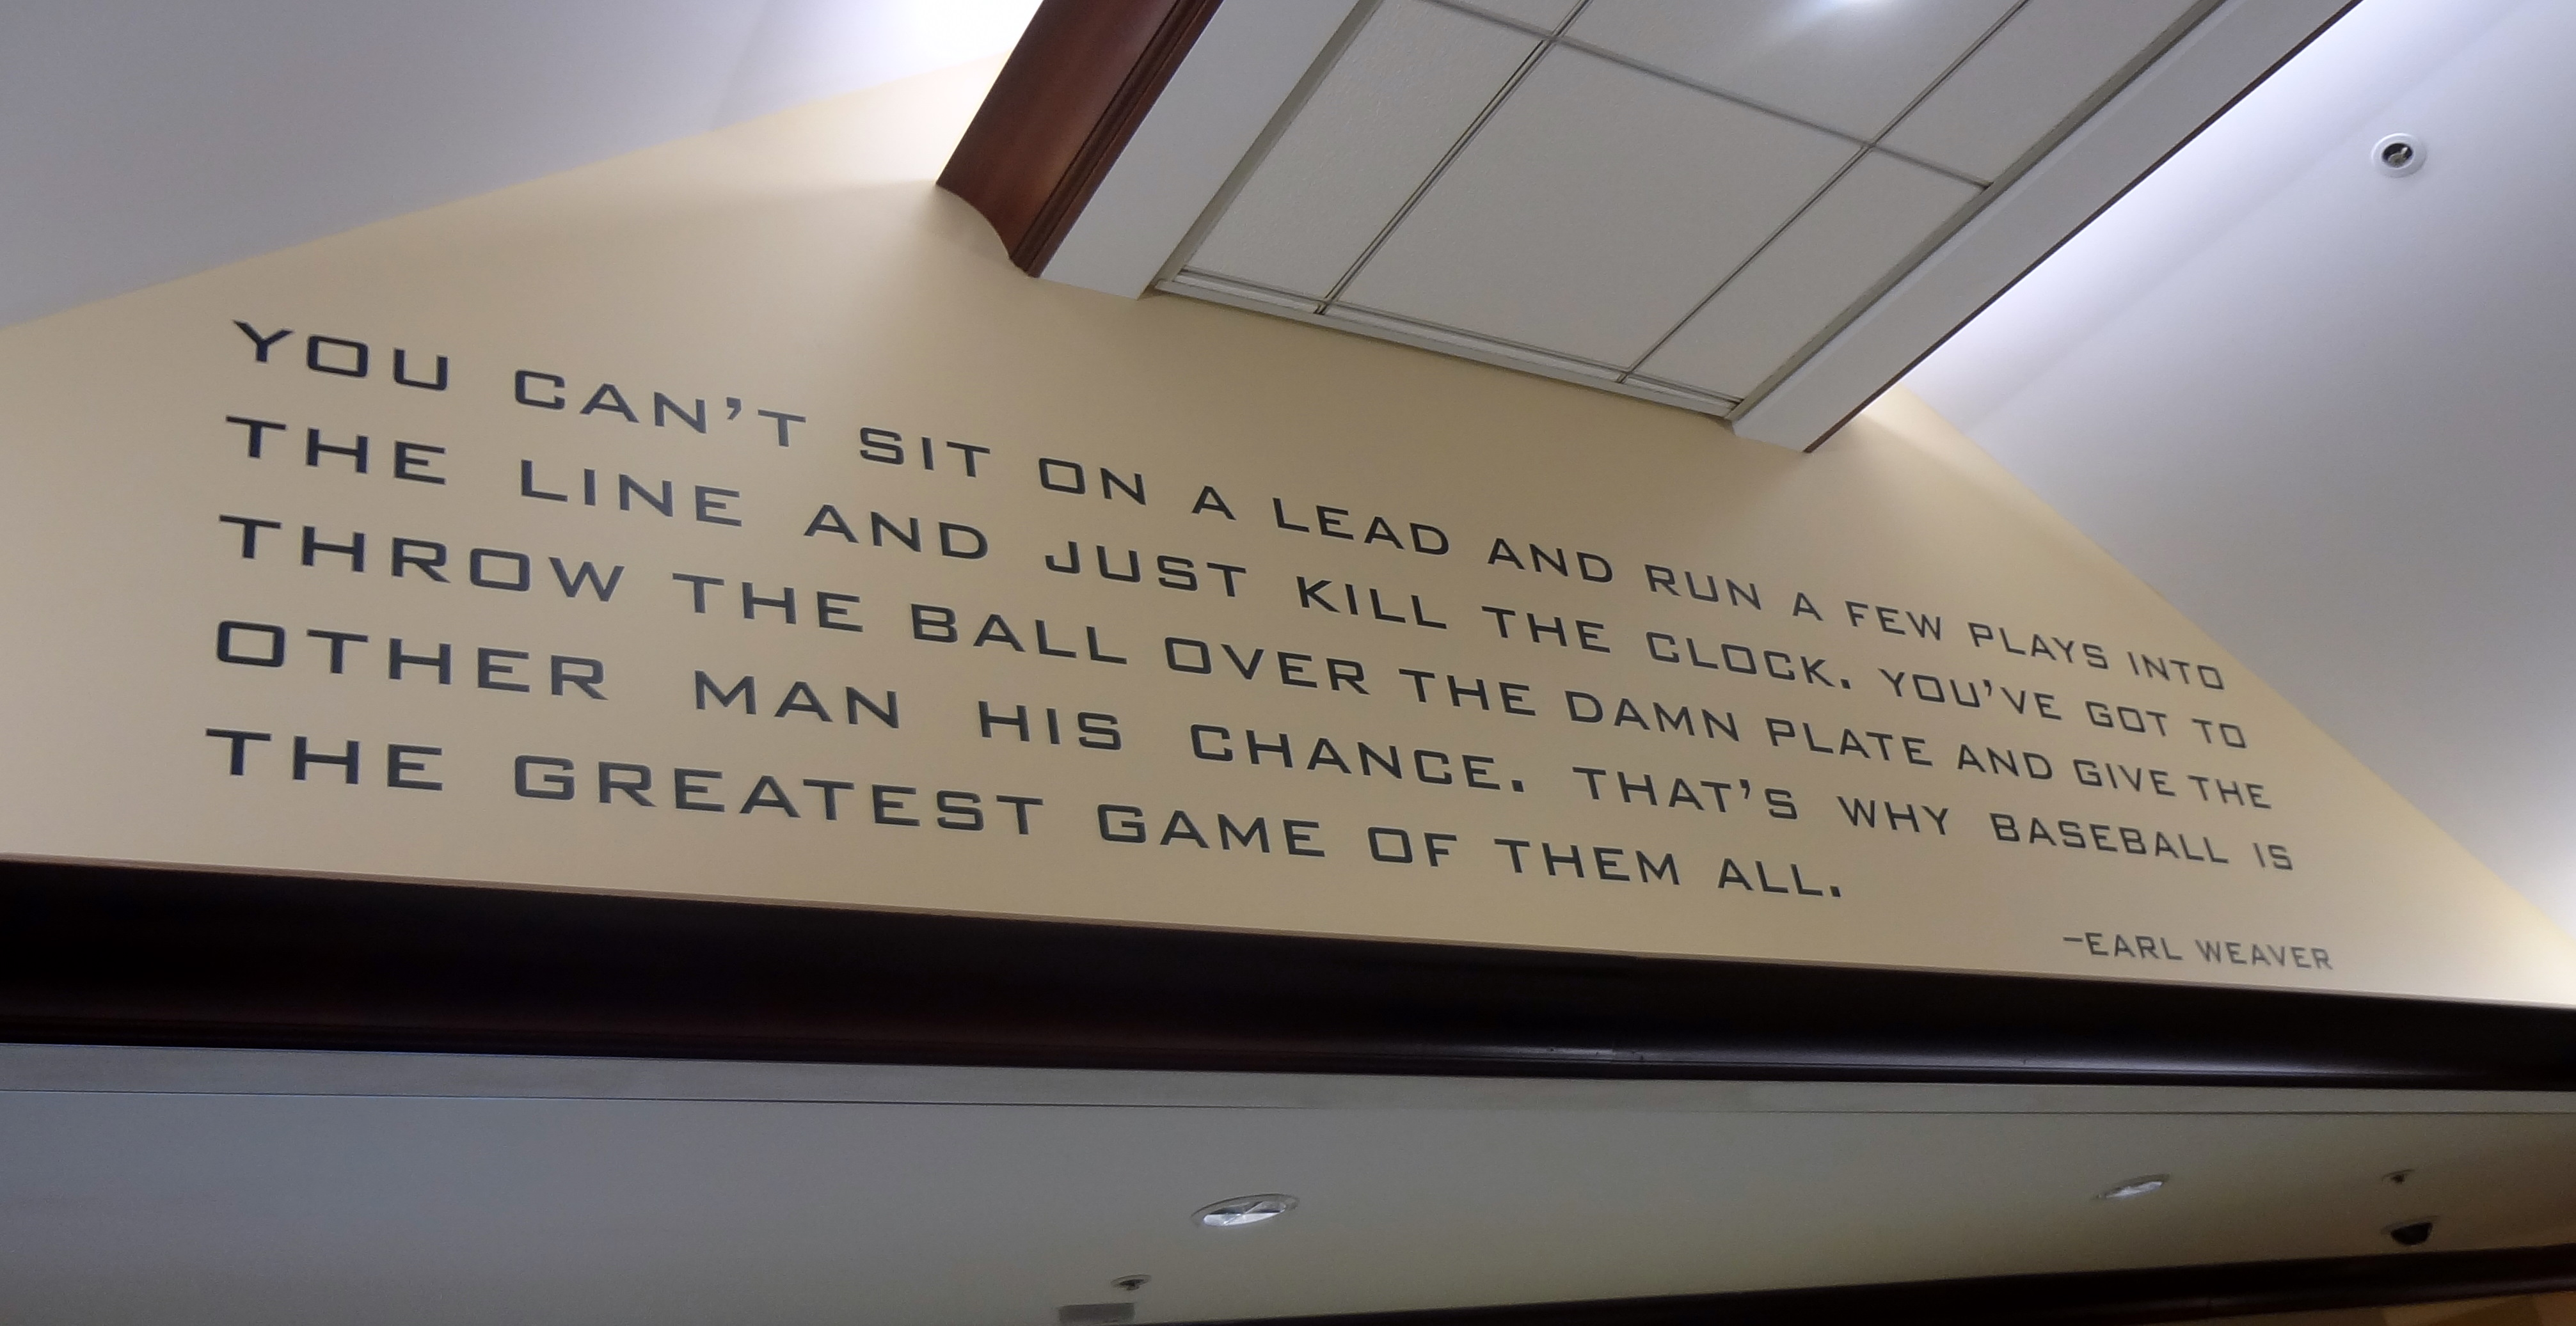 Baseball Quote Earl Weaver's Quotes Famous And Not Much  Sualci Quotes